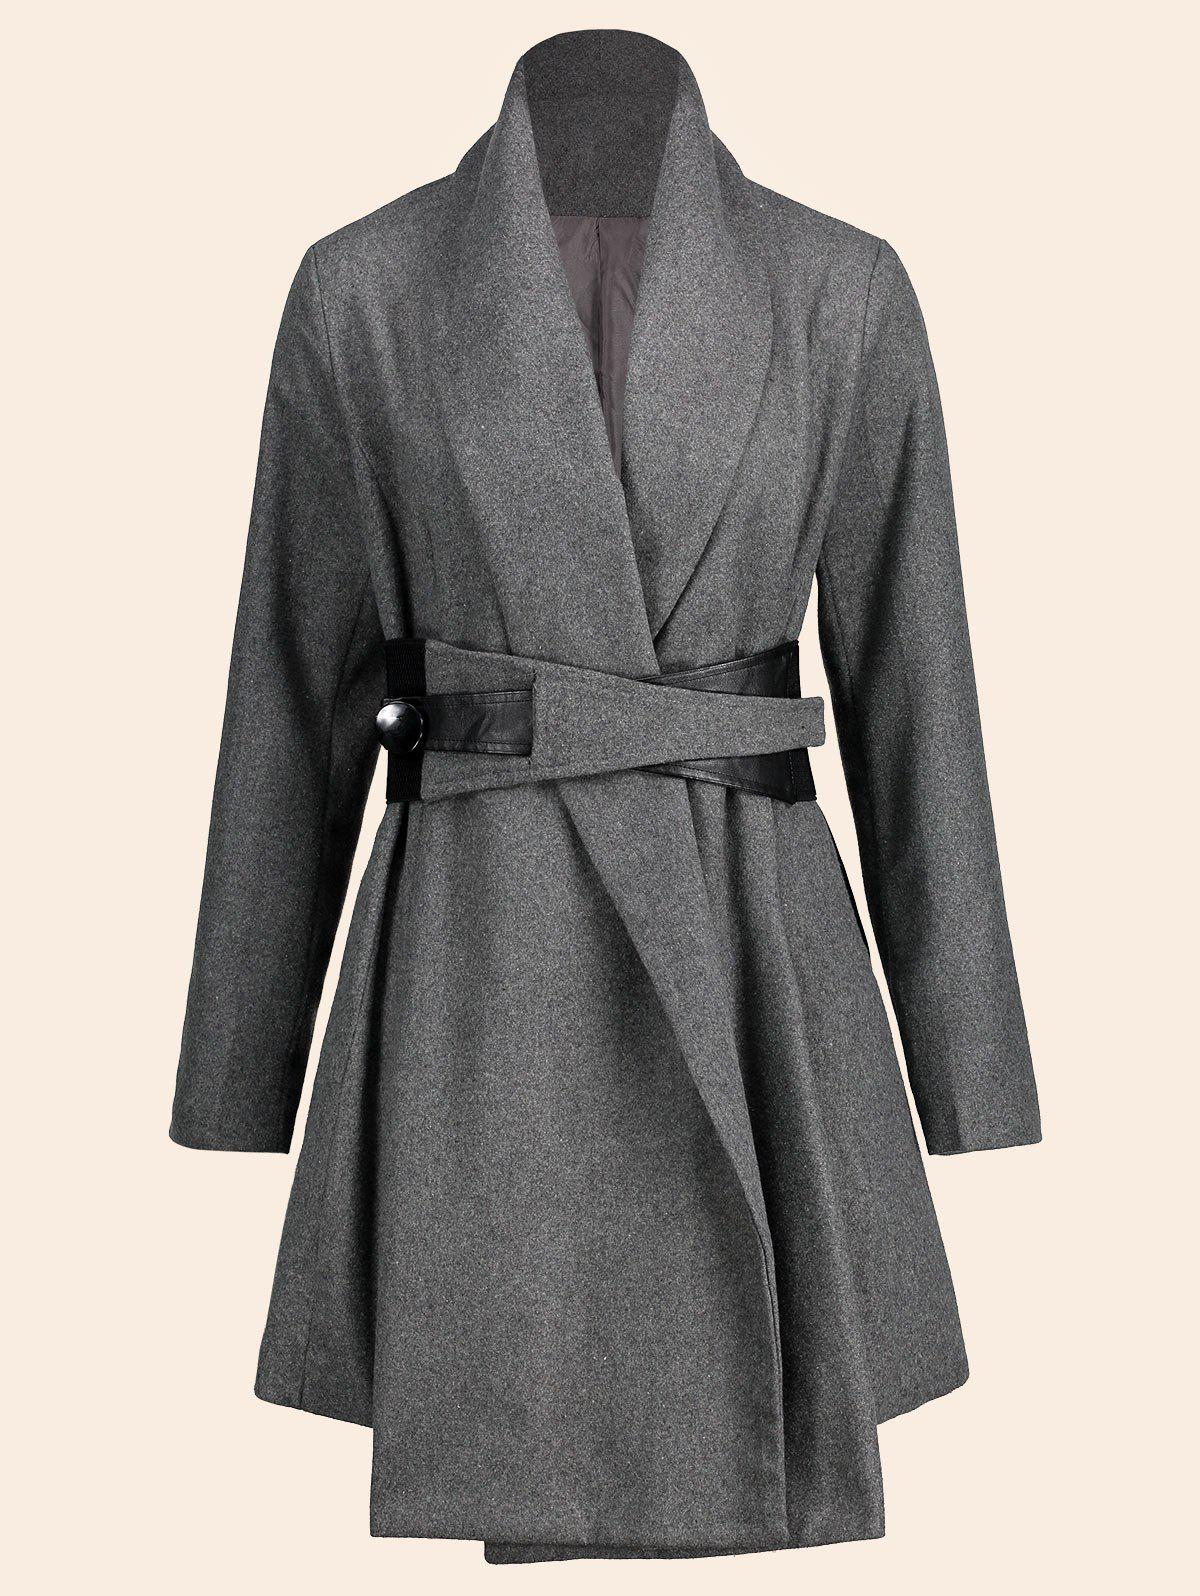 Asymmetrical Plus Size Belted Skirted CoatWOMEN<br><br>Size: 2XL; Color: DEEP GRAY; Clothes Type: Wool &amp; Blends; Material: Acrylic,Polyester; Type: Wide-waisted; Shirt Length: Regular; Sleeve Length: Full; Collar: Turn-down Collar; Pattern Type: Solid; Style: Fashion; Season: Fall,Spring,Winter; With Belt: Yes; Weight: 1.2500kg; Package Contents: 1 x Coat  1 x Belt;